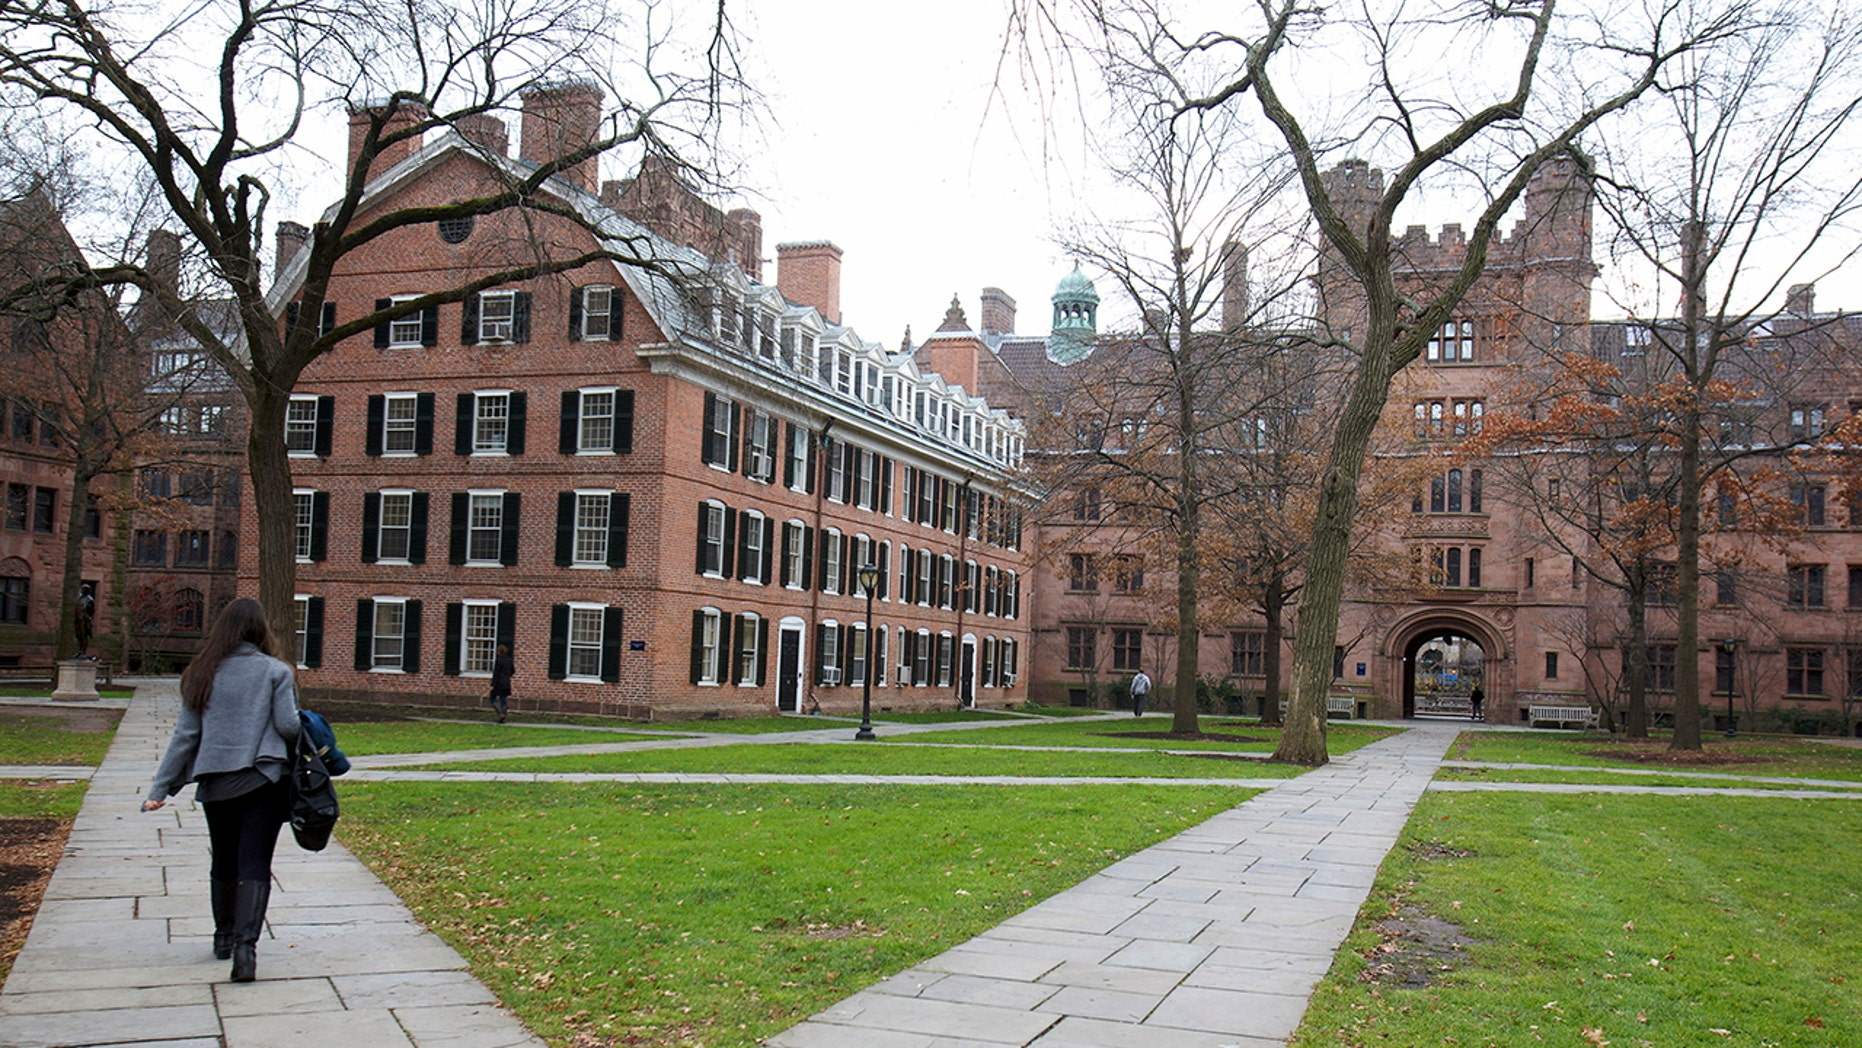 Old Campus at Yale University in New Haven, Connecticut.